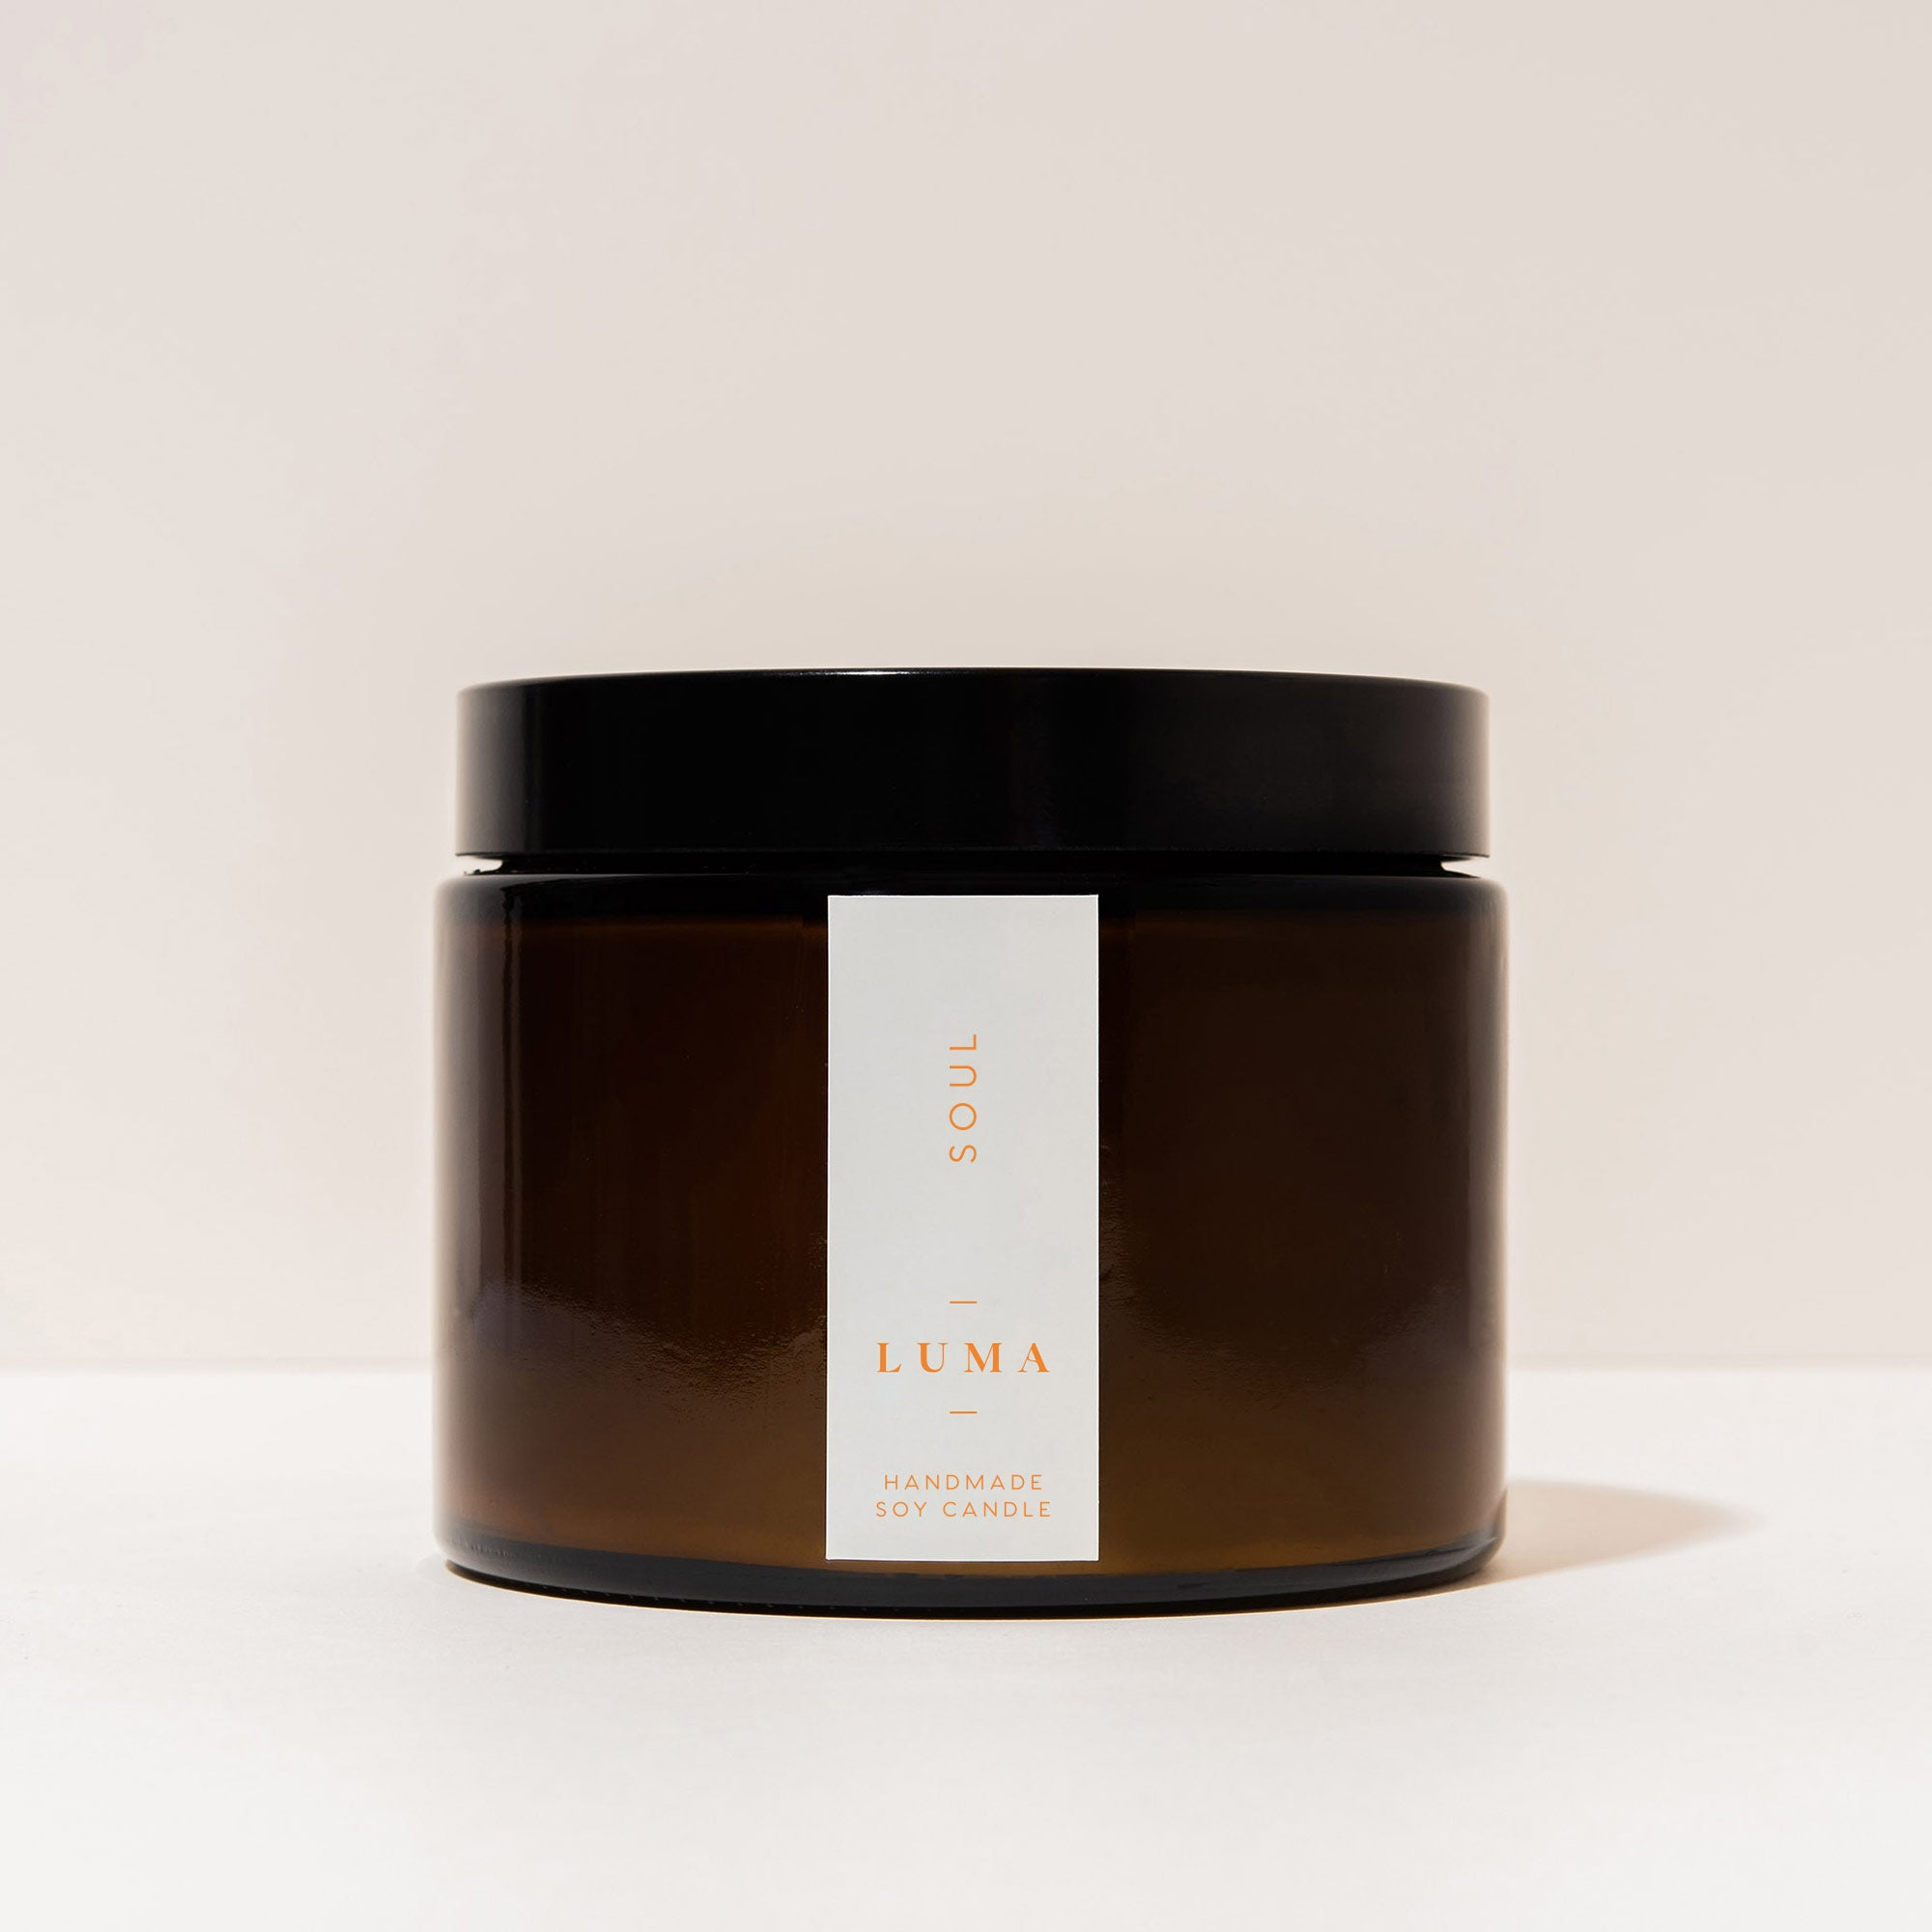 Soul | Handmade Soy Wax Candle - Luma Candles